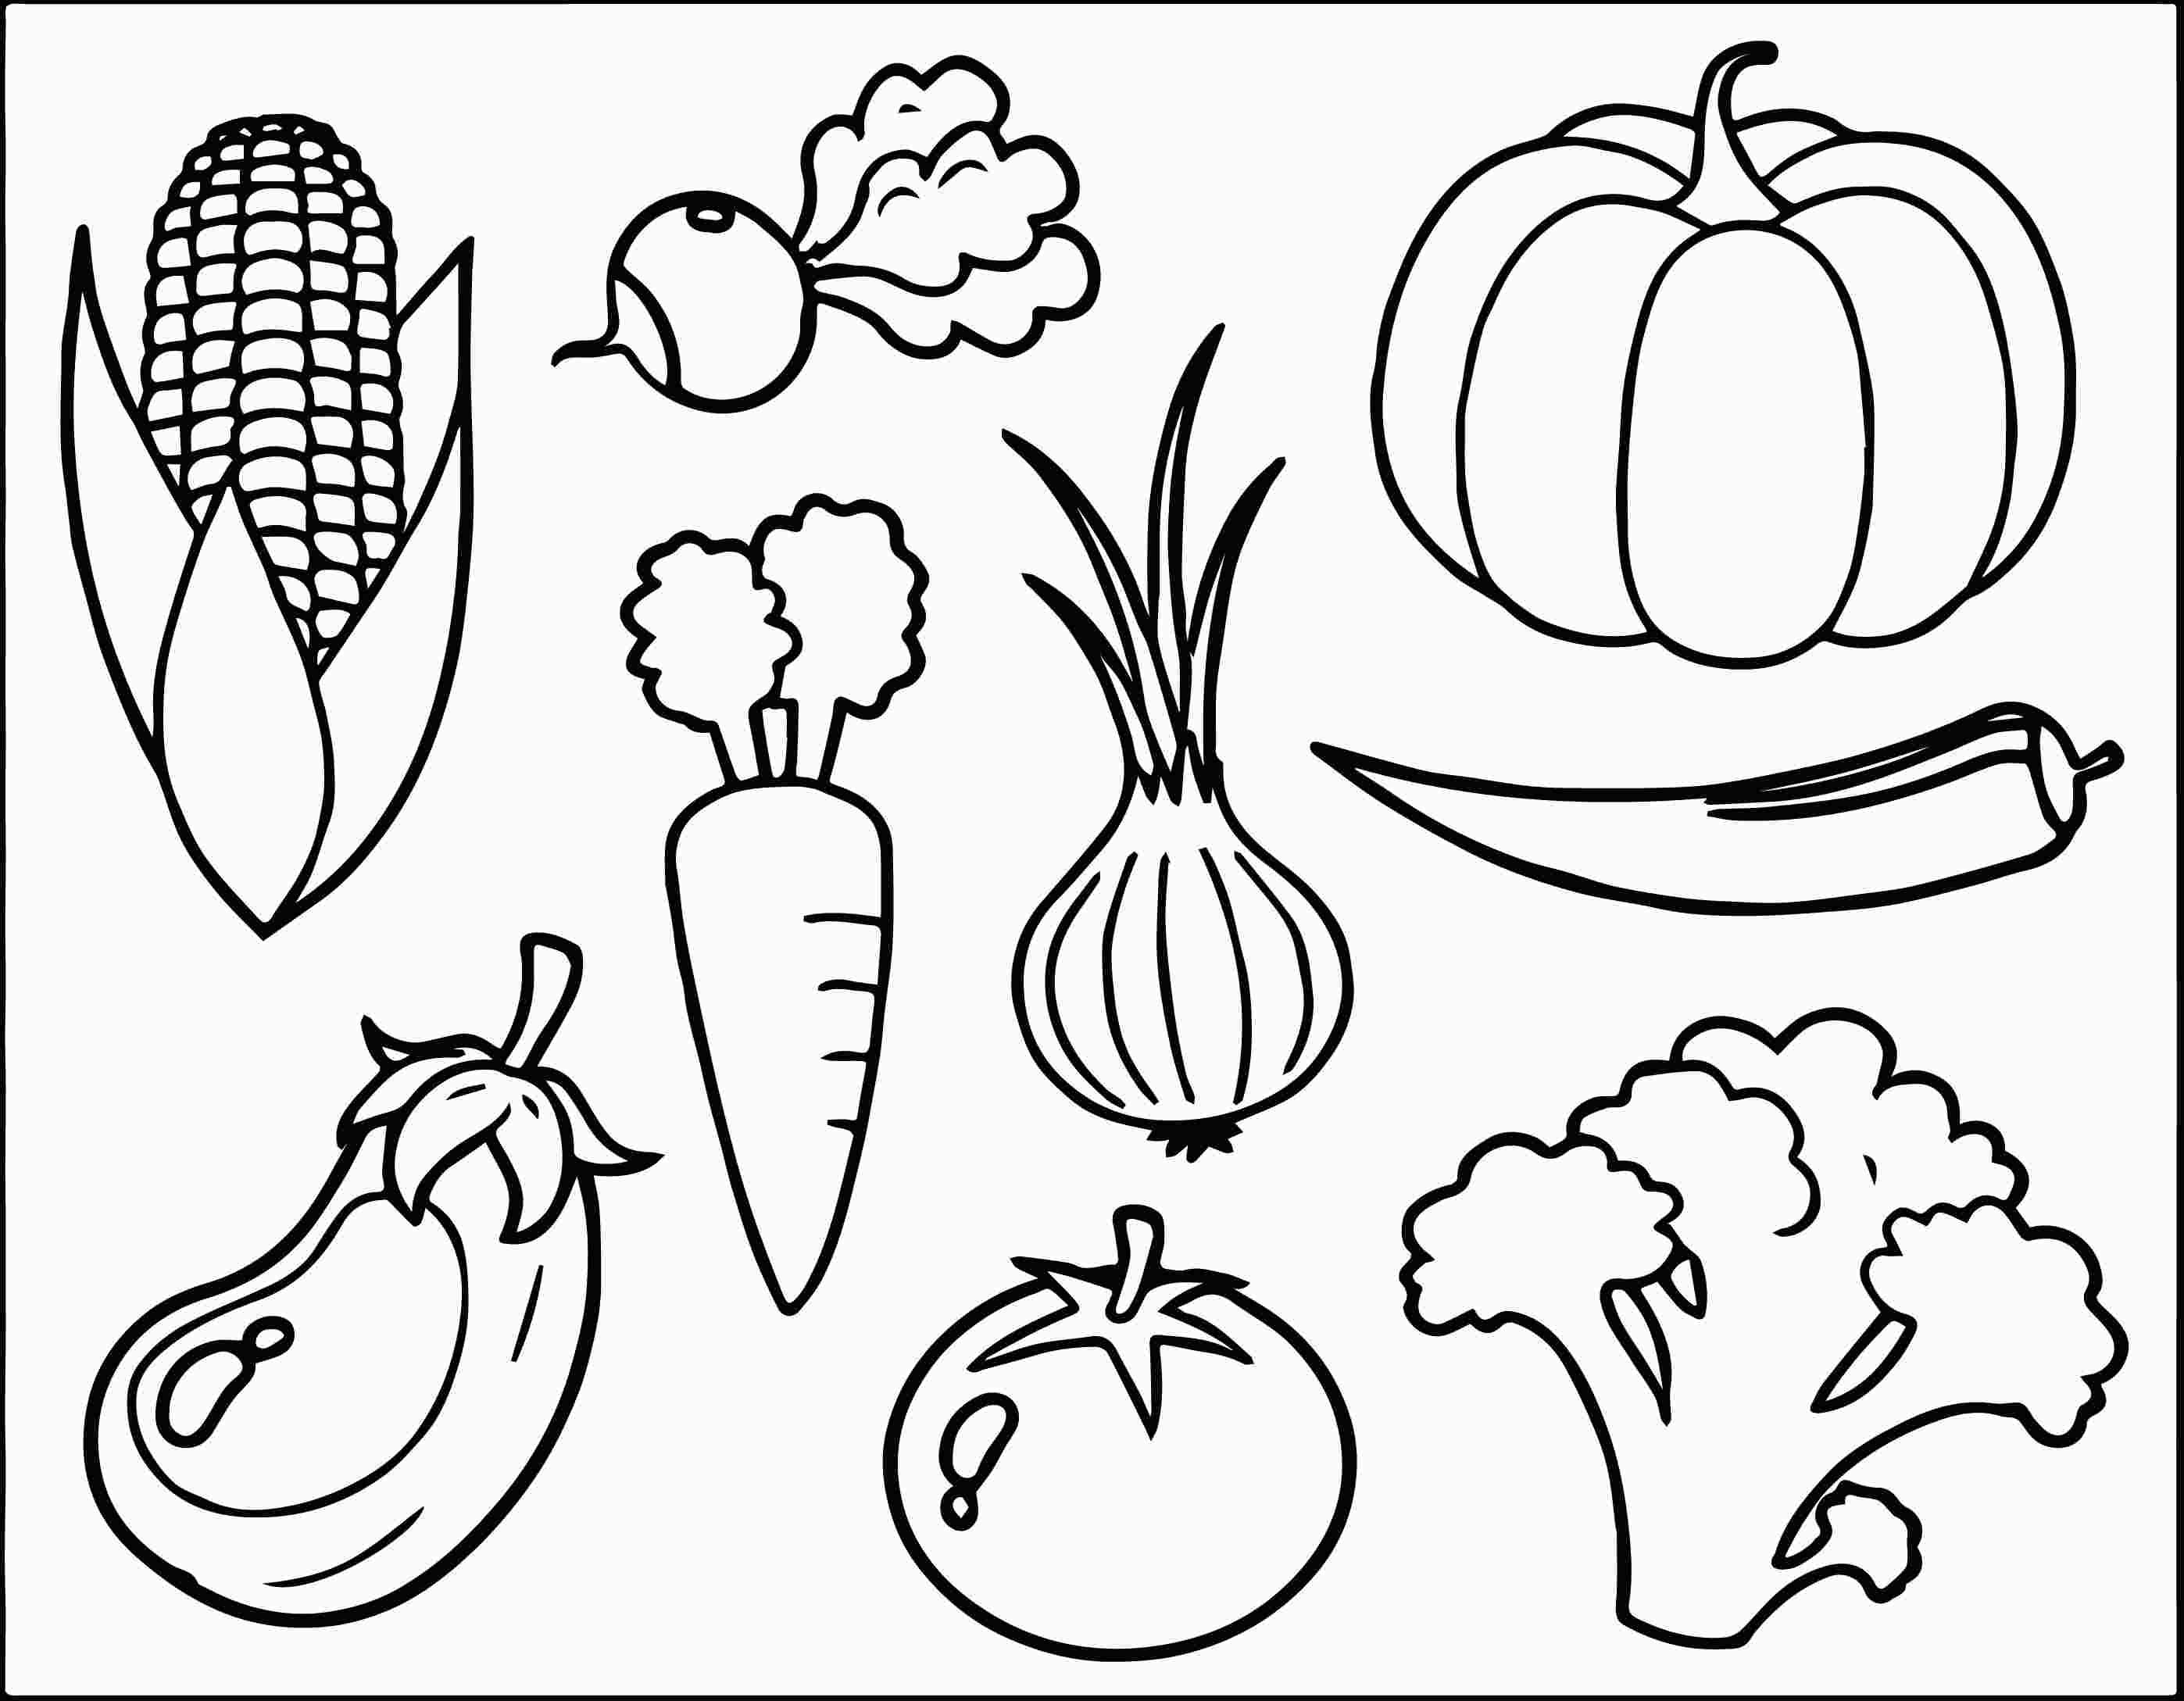 Free Vegetable Coloring Pages With Images